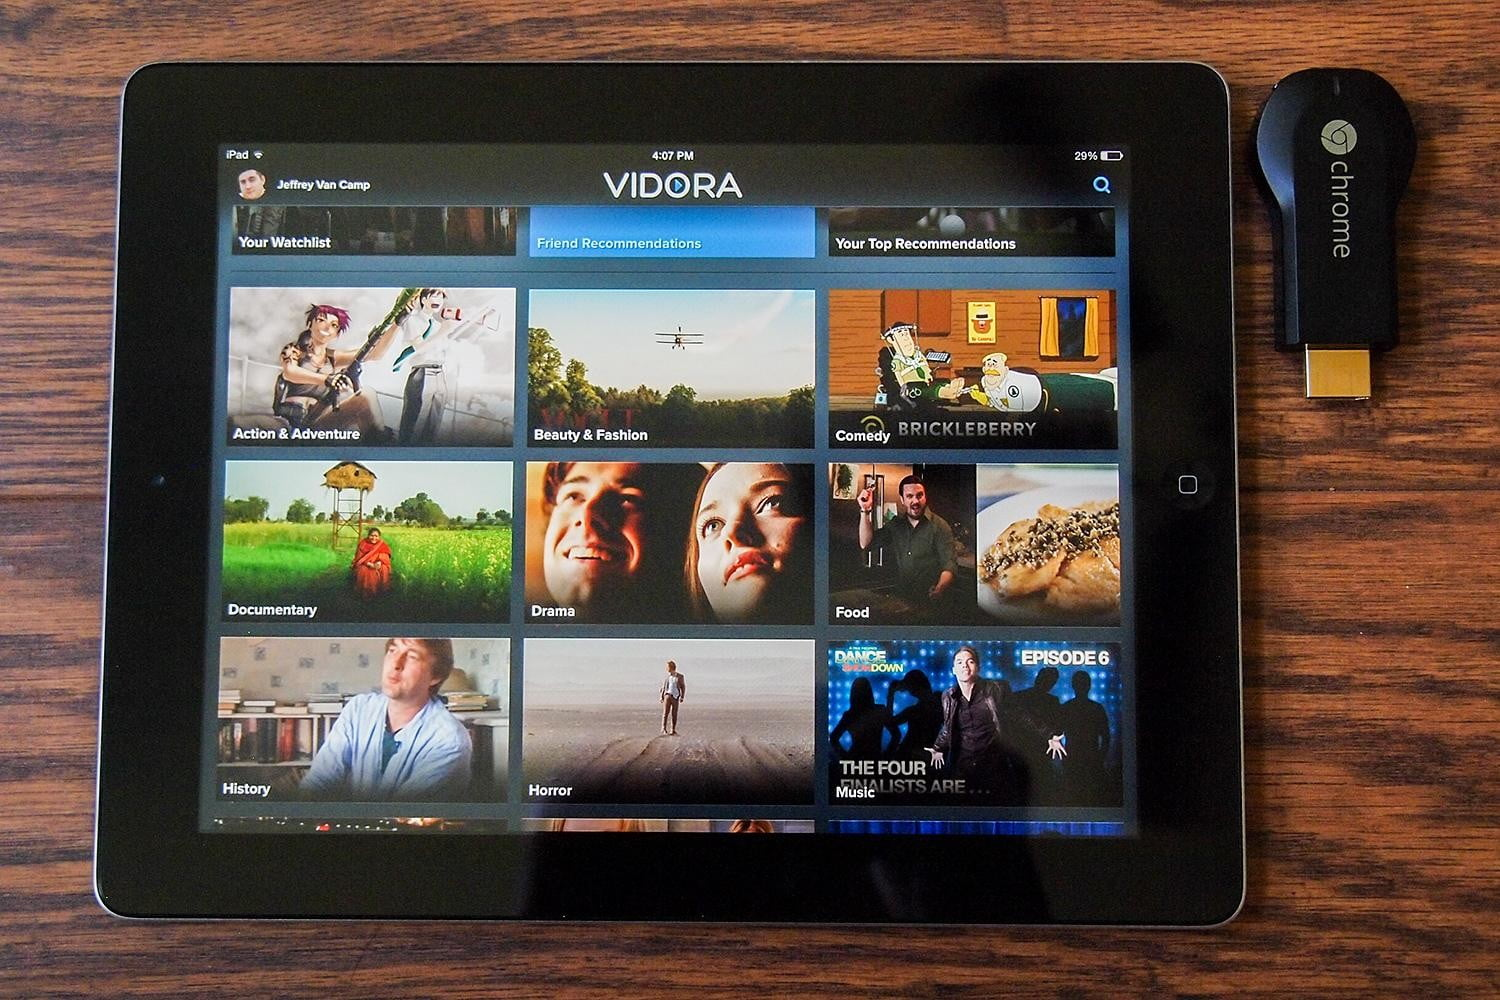 Meet Vidora, a TV guide for your iPad (and Chromecast